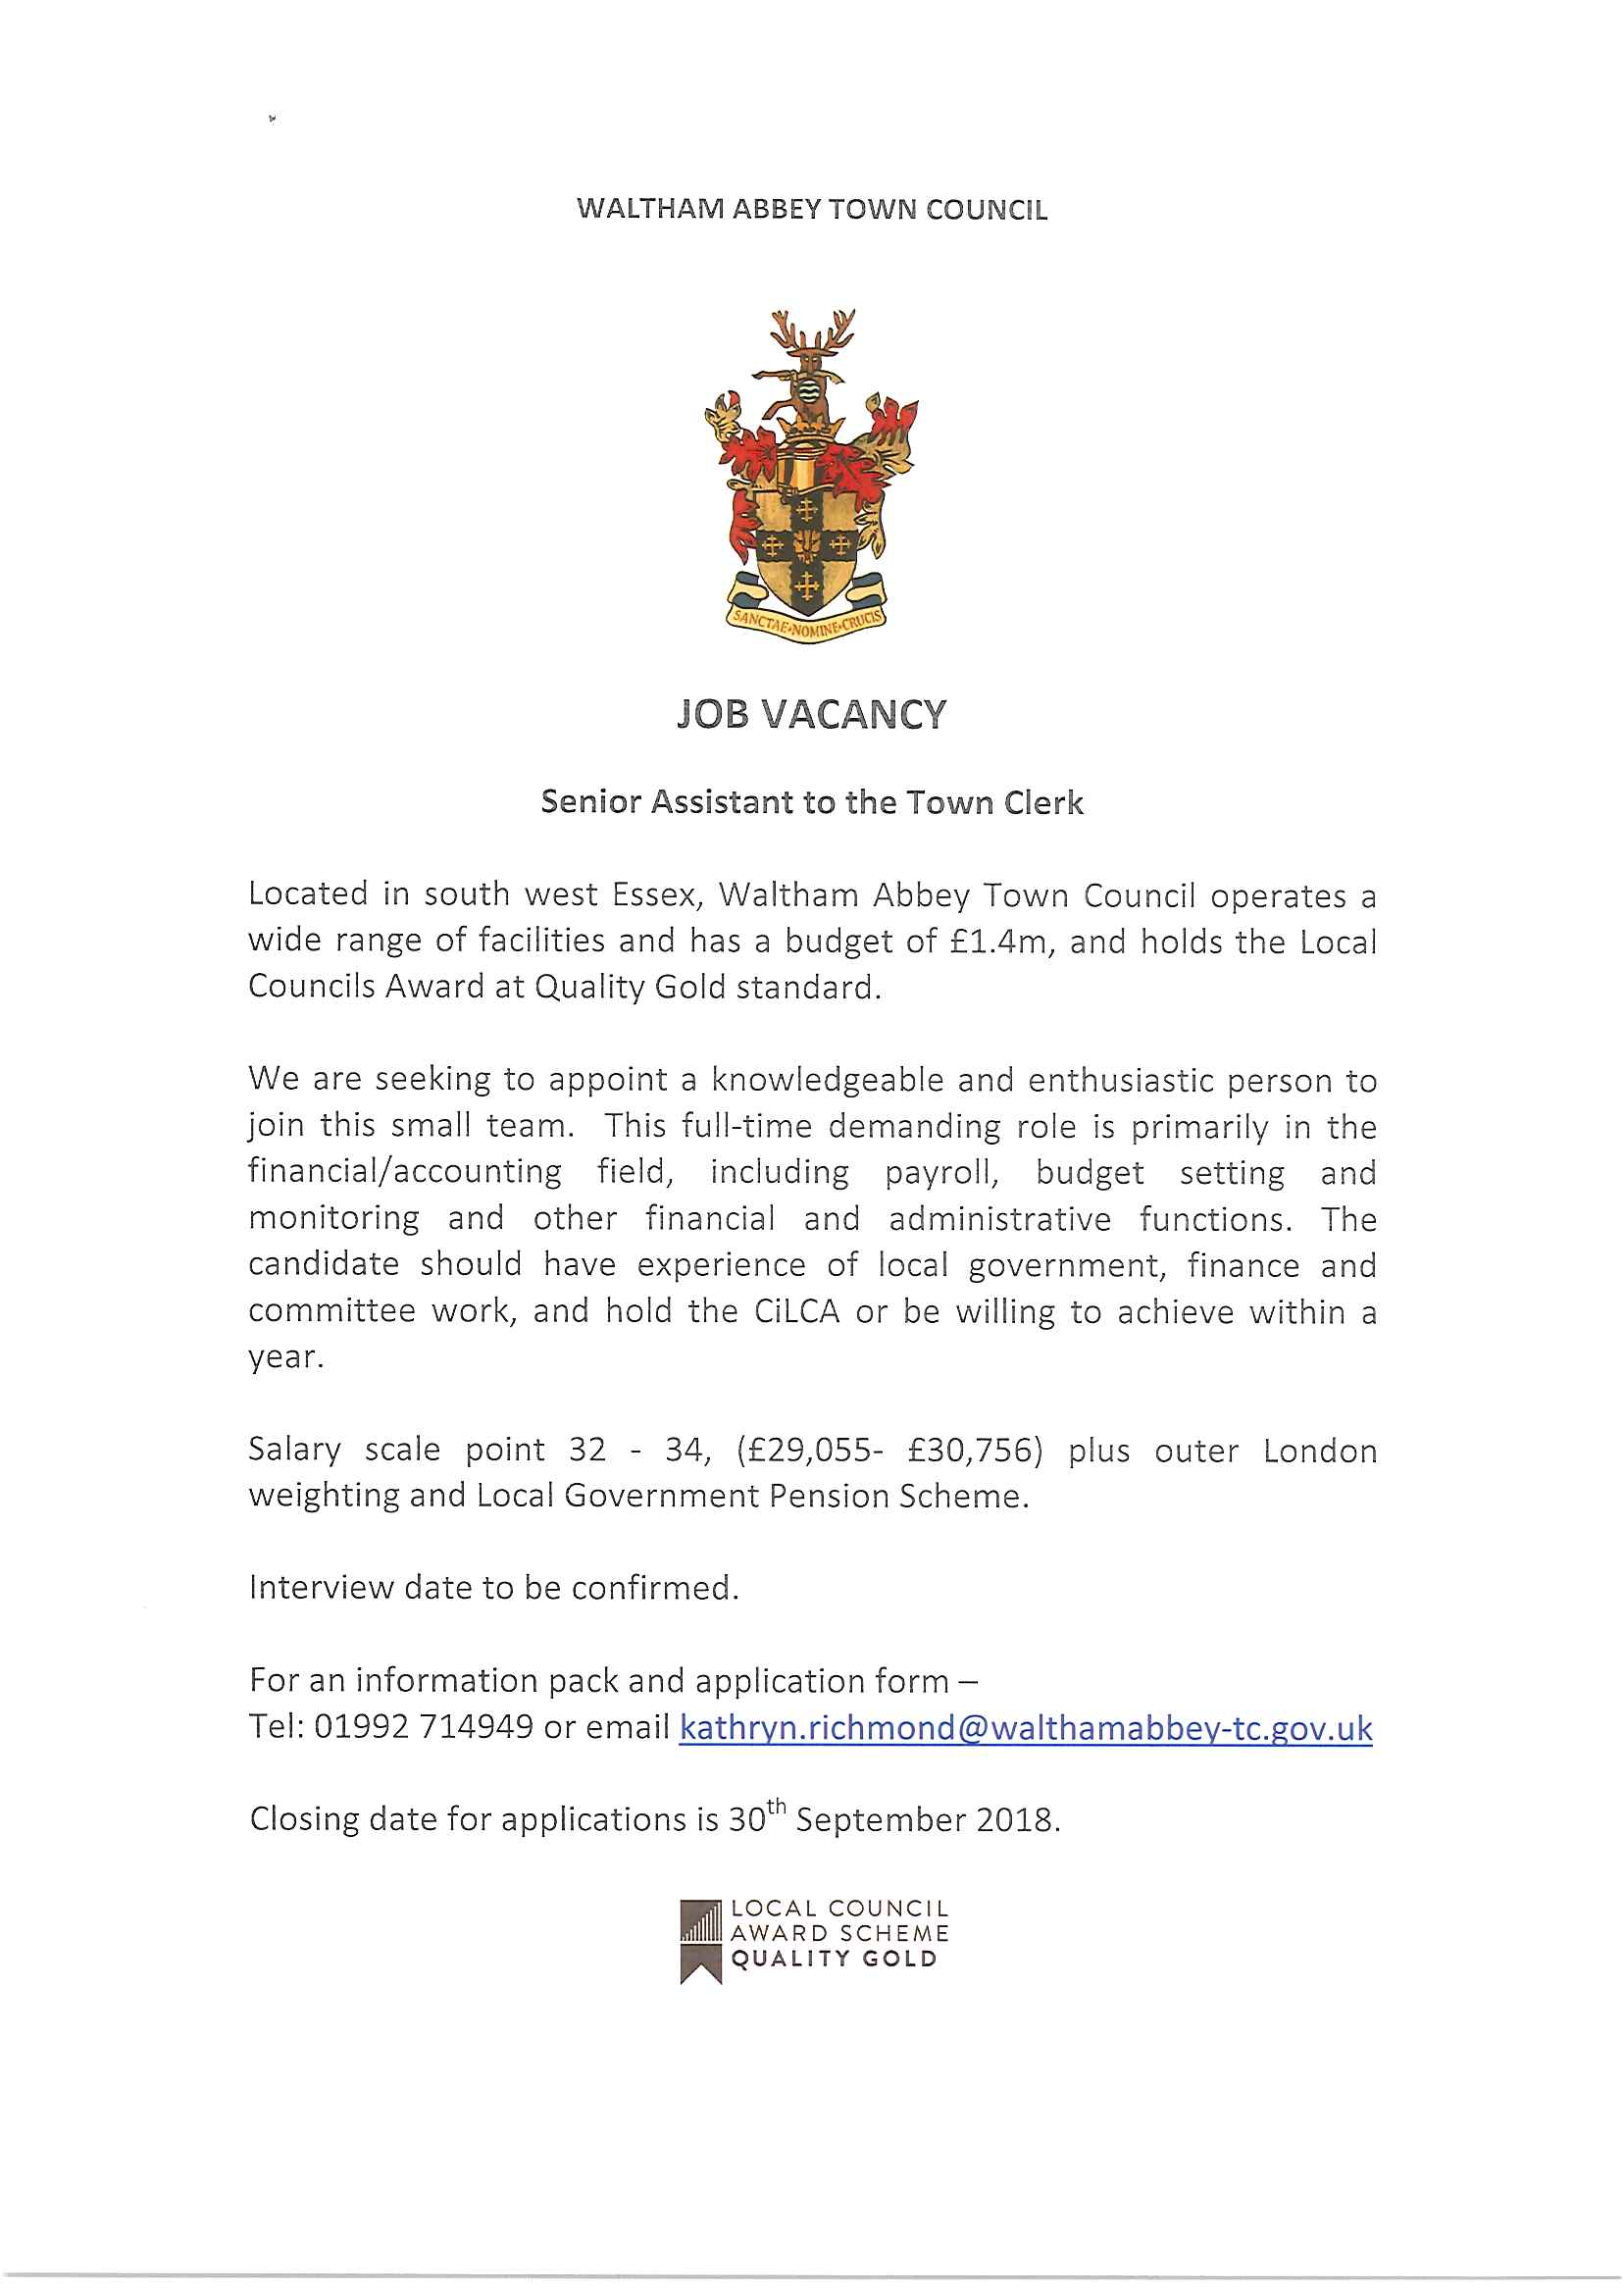 Job Vacancy - Senior Assistant to the Town Clerk - Waltham Abbey